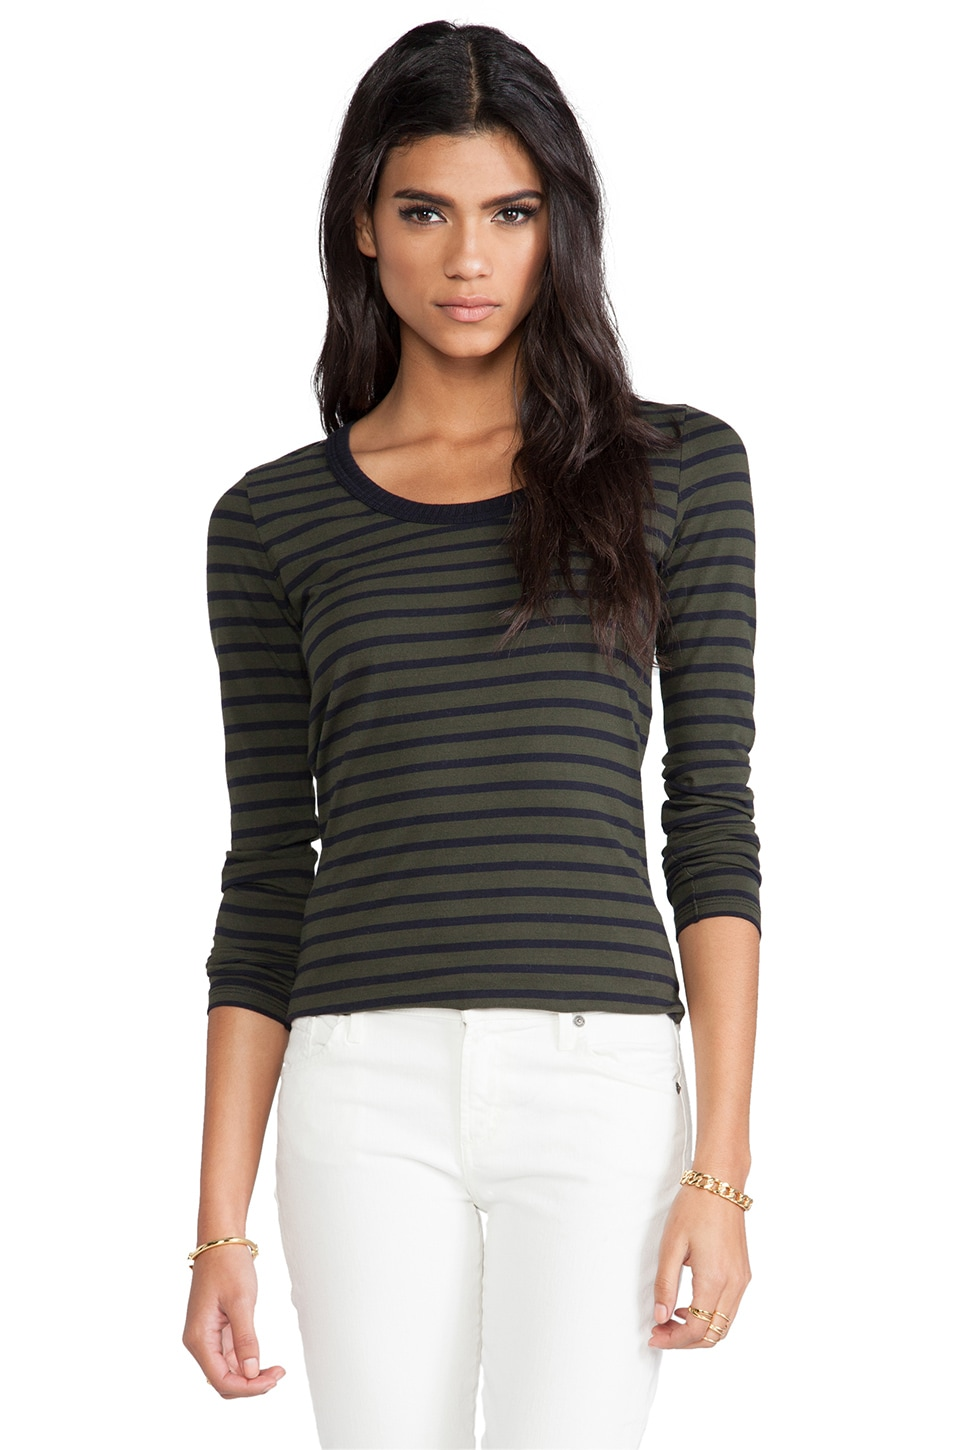 DemyLee Stripe Parker Long Sleeve in Army Green/Navy